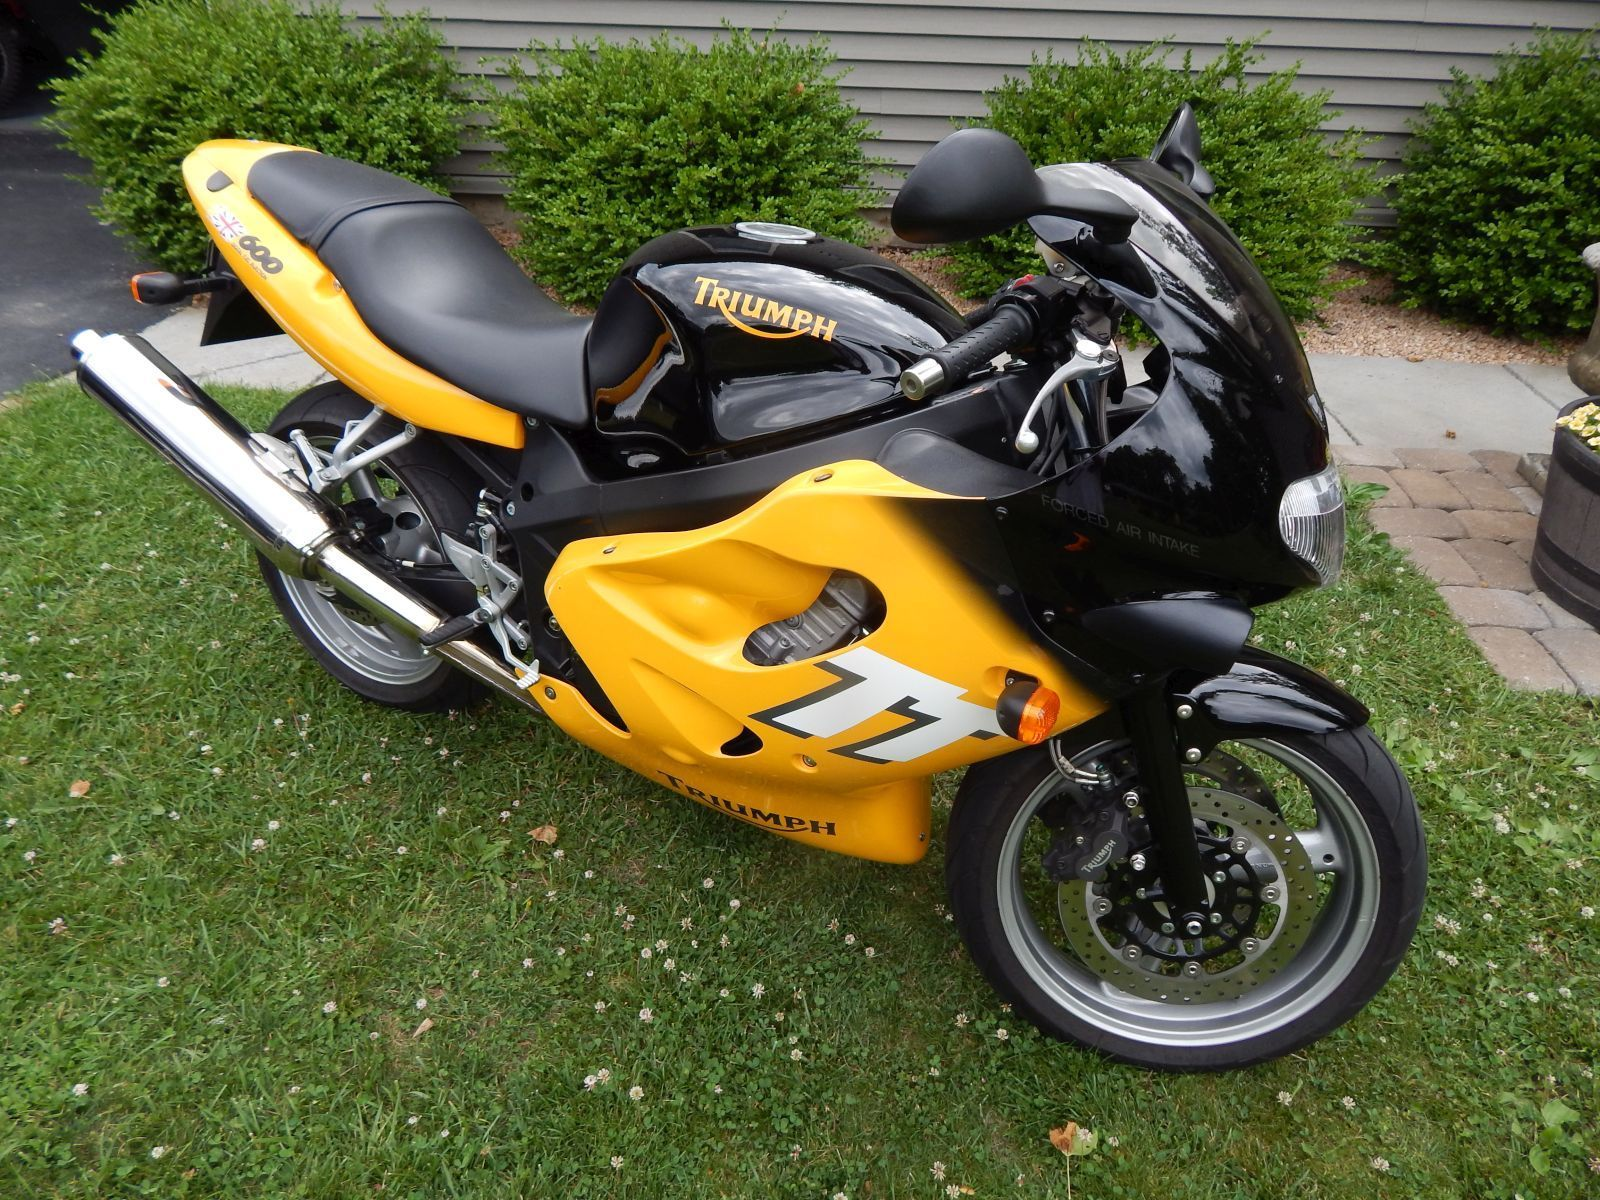 from the jaws of victory 2000 triumph tt600 rare sportbikes for sale. Black Bedroom Furniture Sets. Home Design Ideas